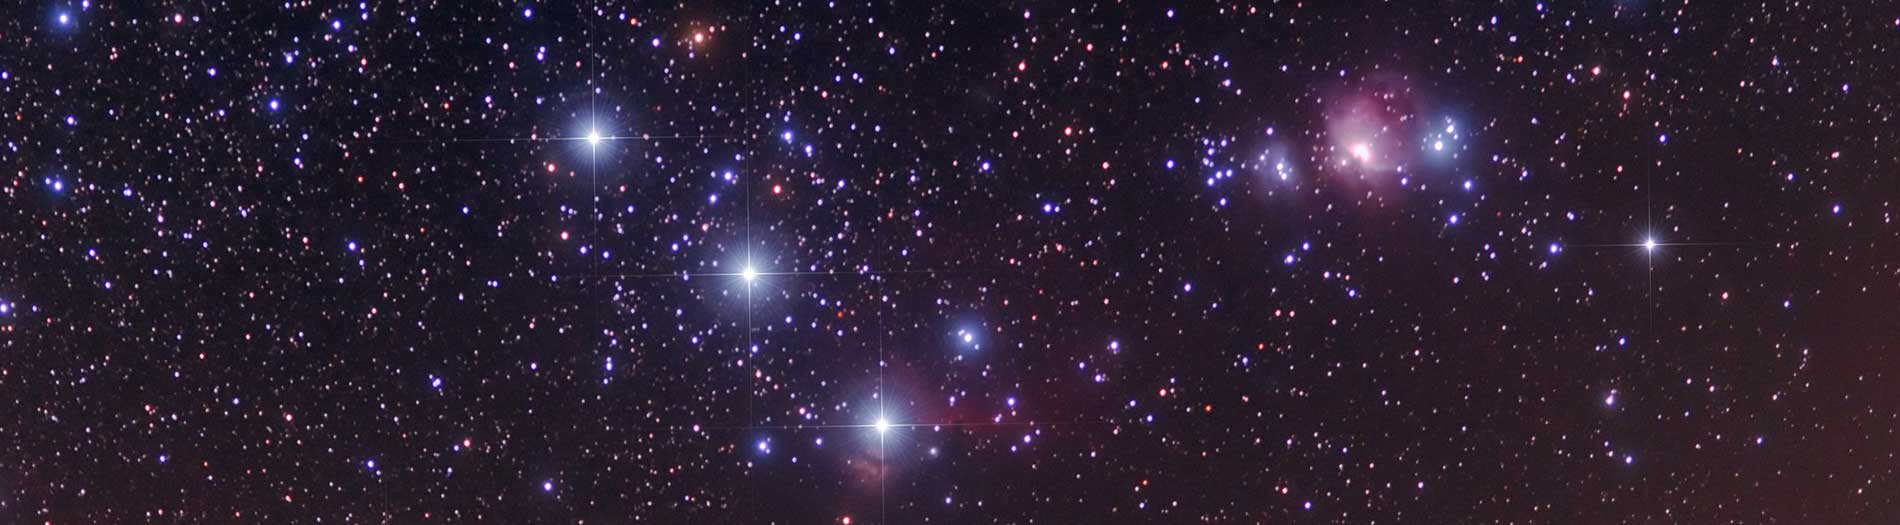 This is a photo of Orion's Belt constellation